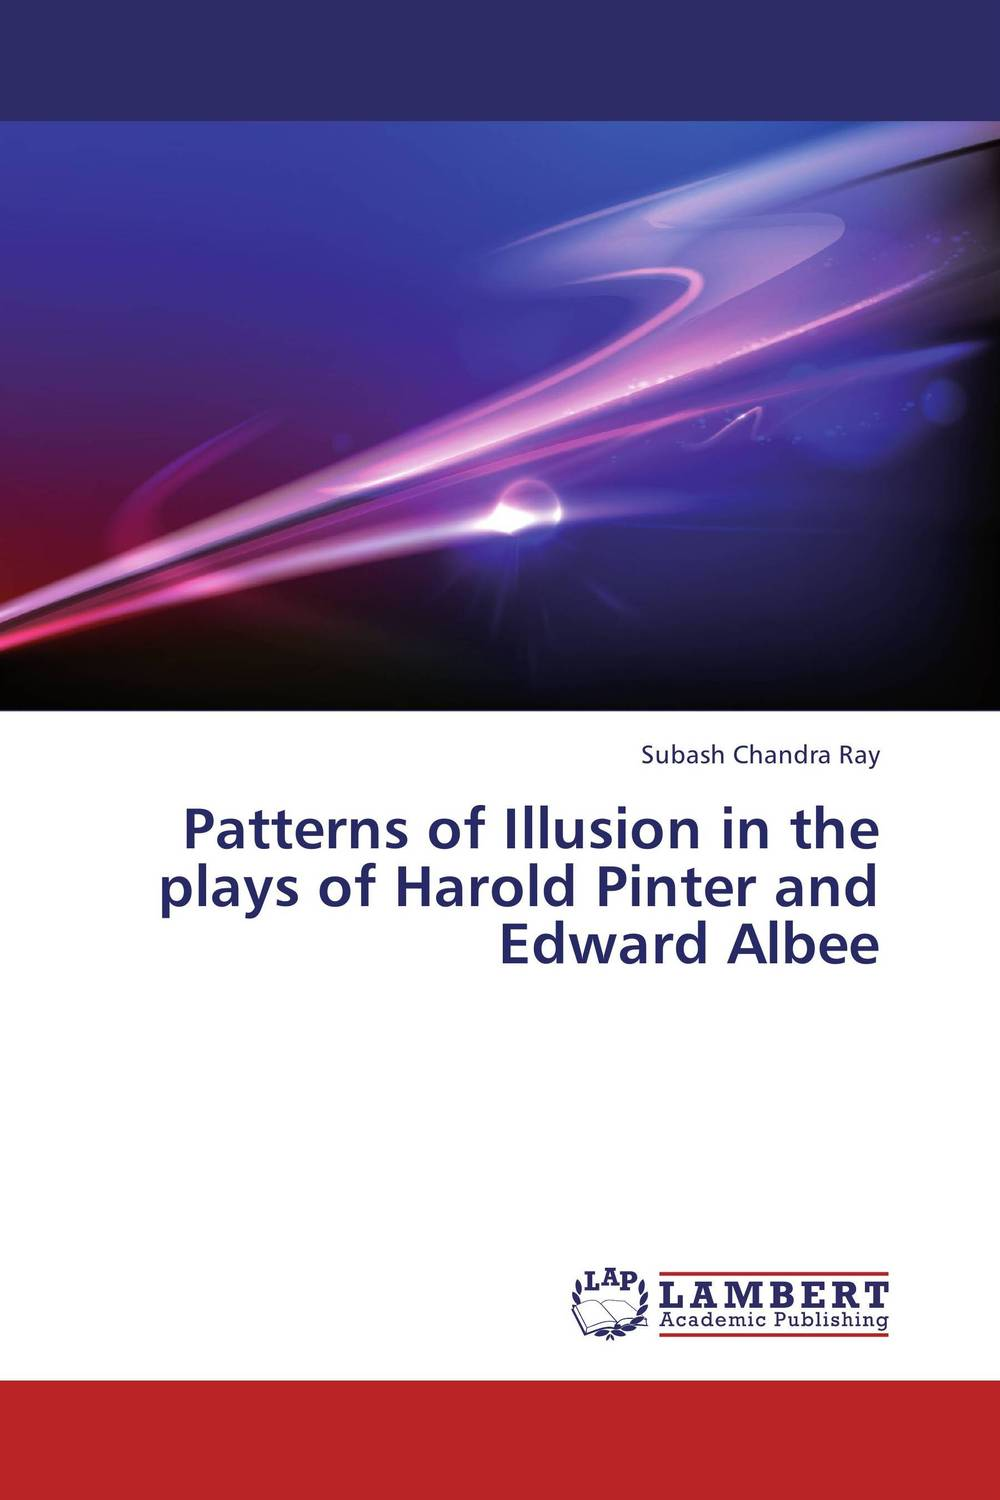 Patterns of Illusion in the plays of Harold Pinter and Edward Albee the major plays